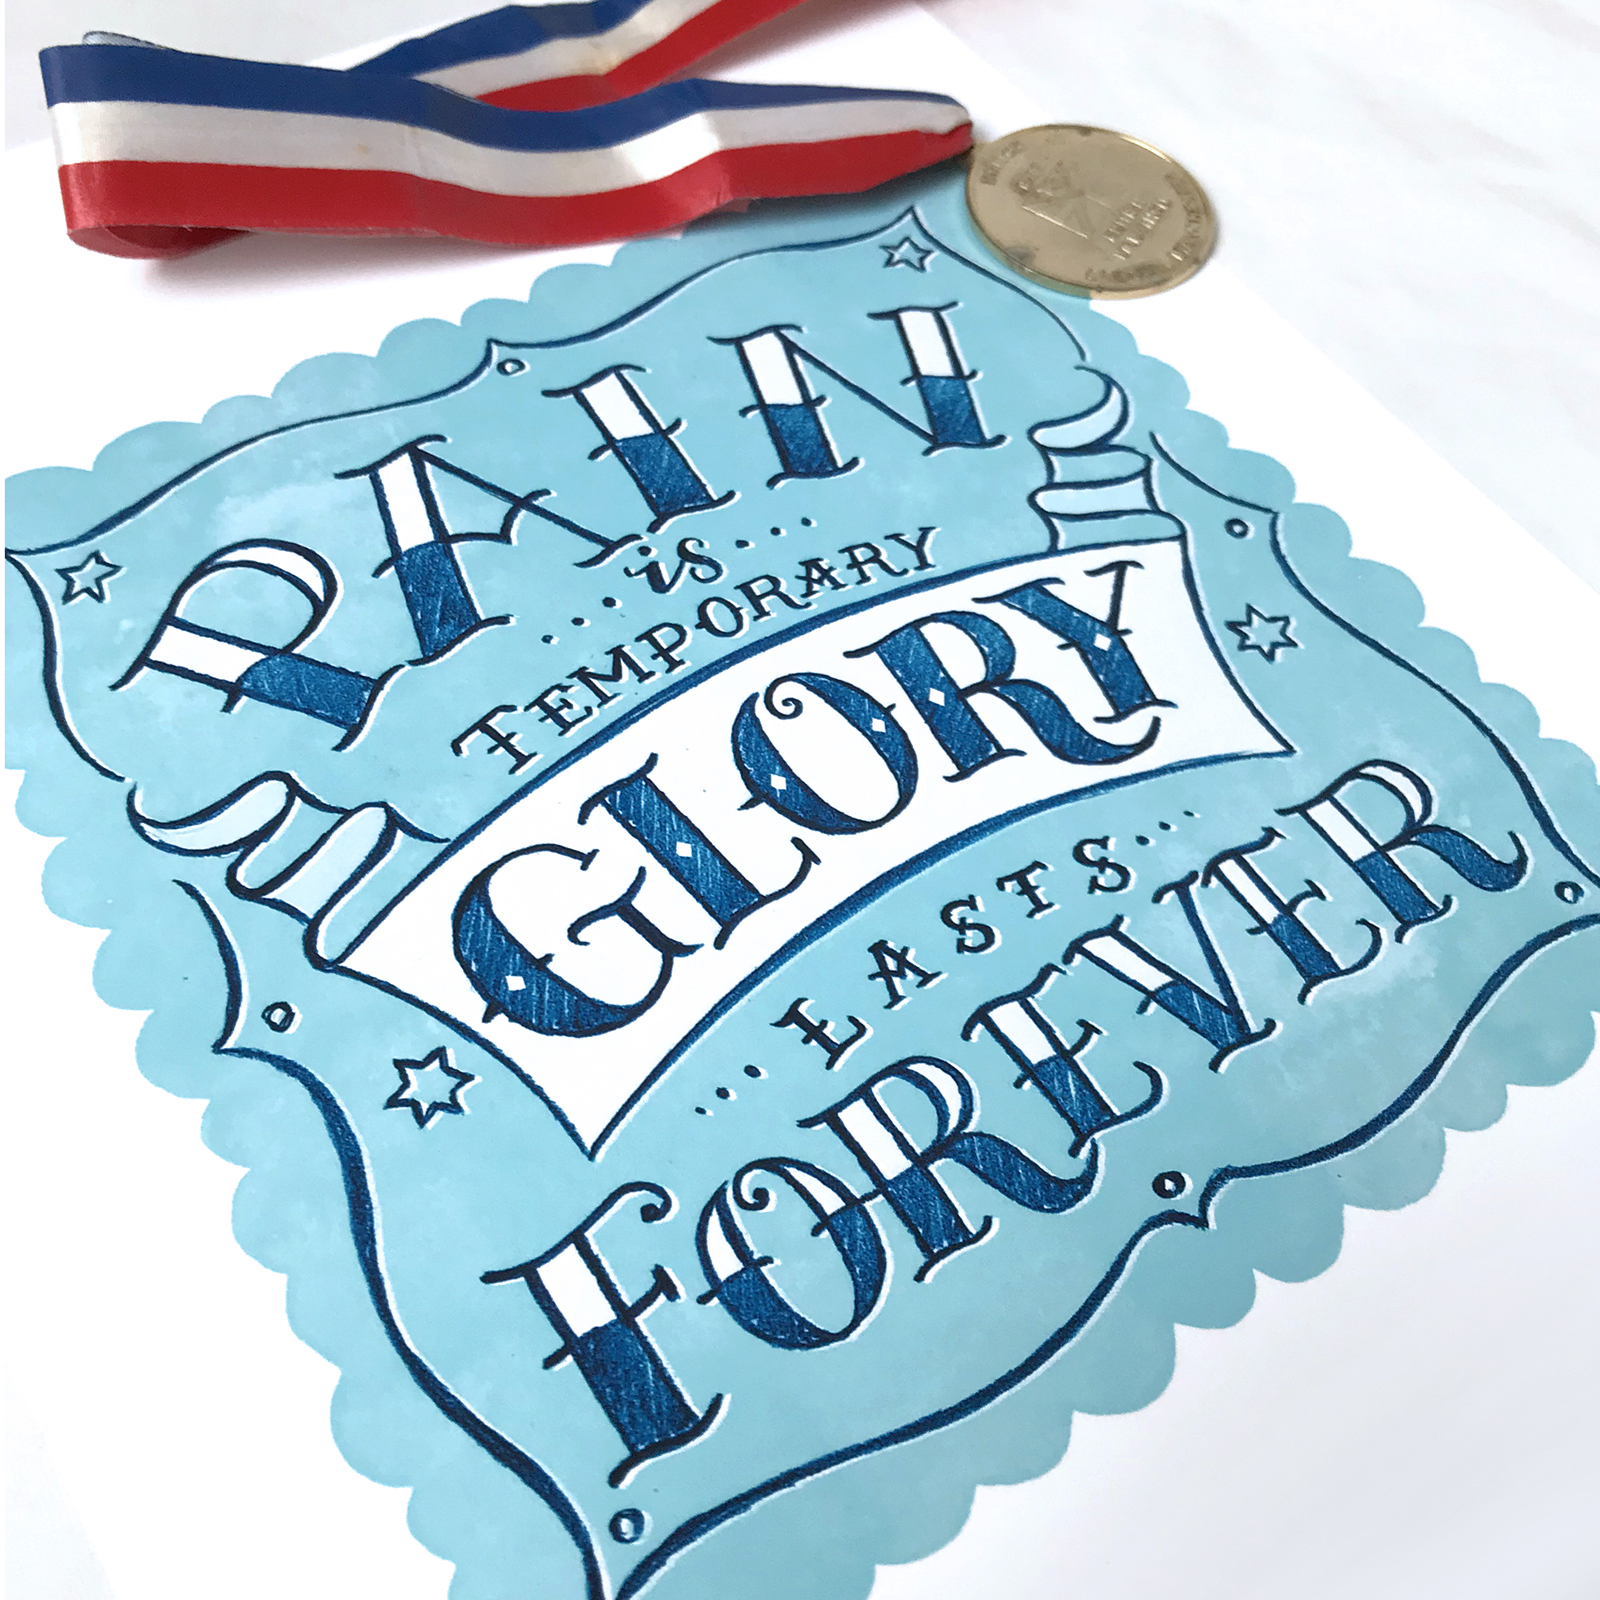 pain.glory.detail.medal.2